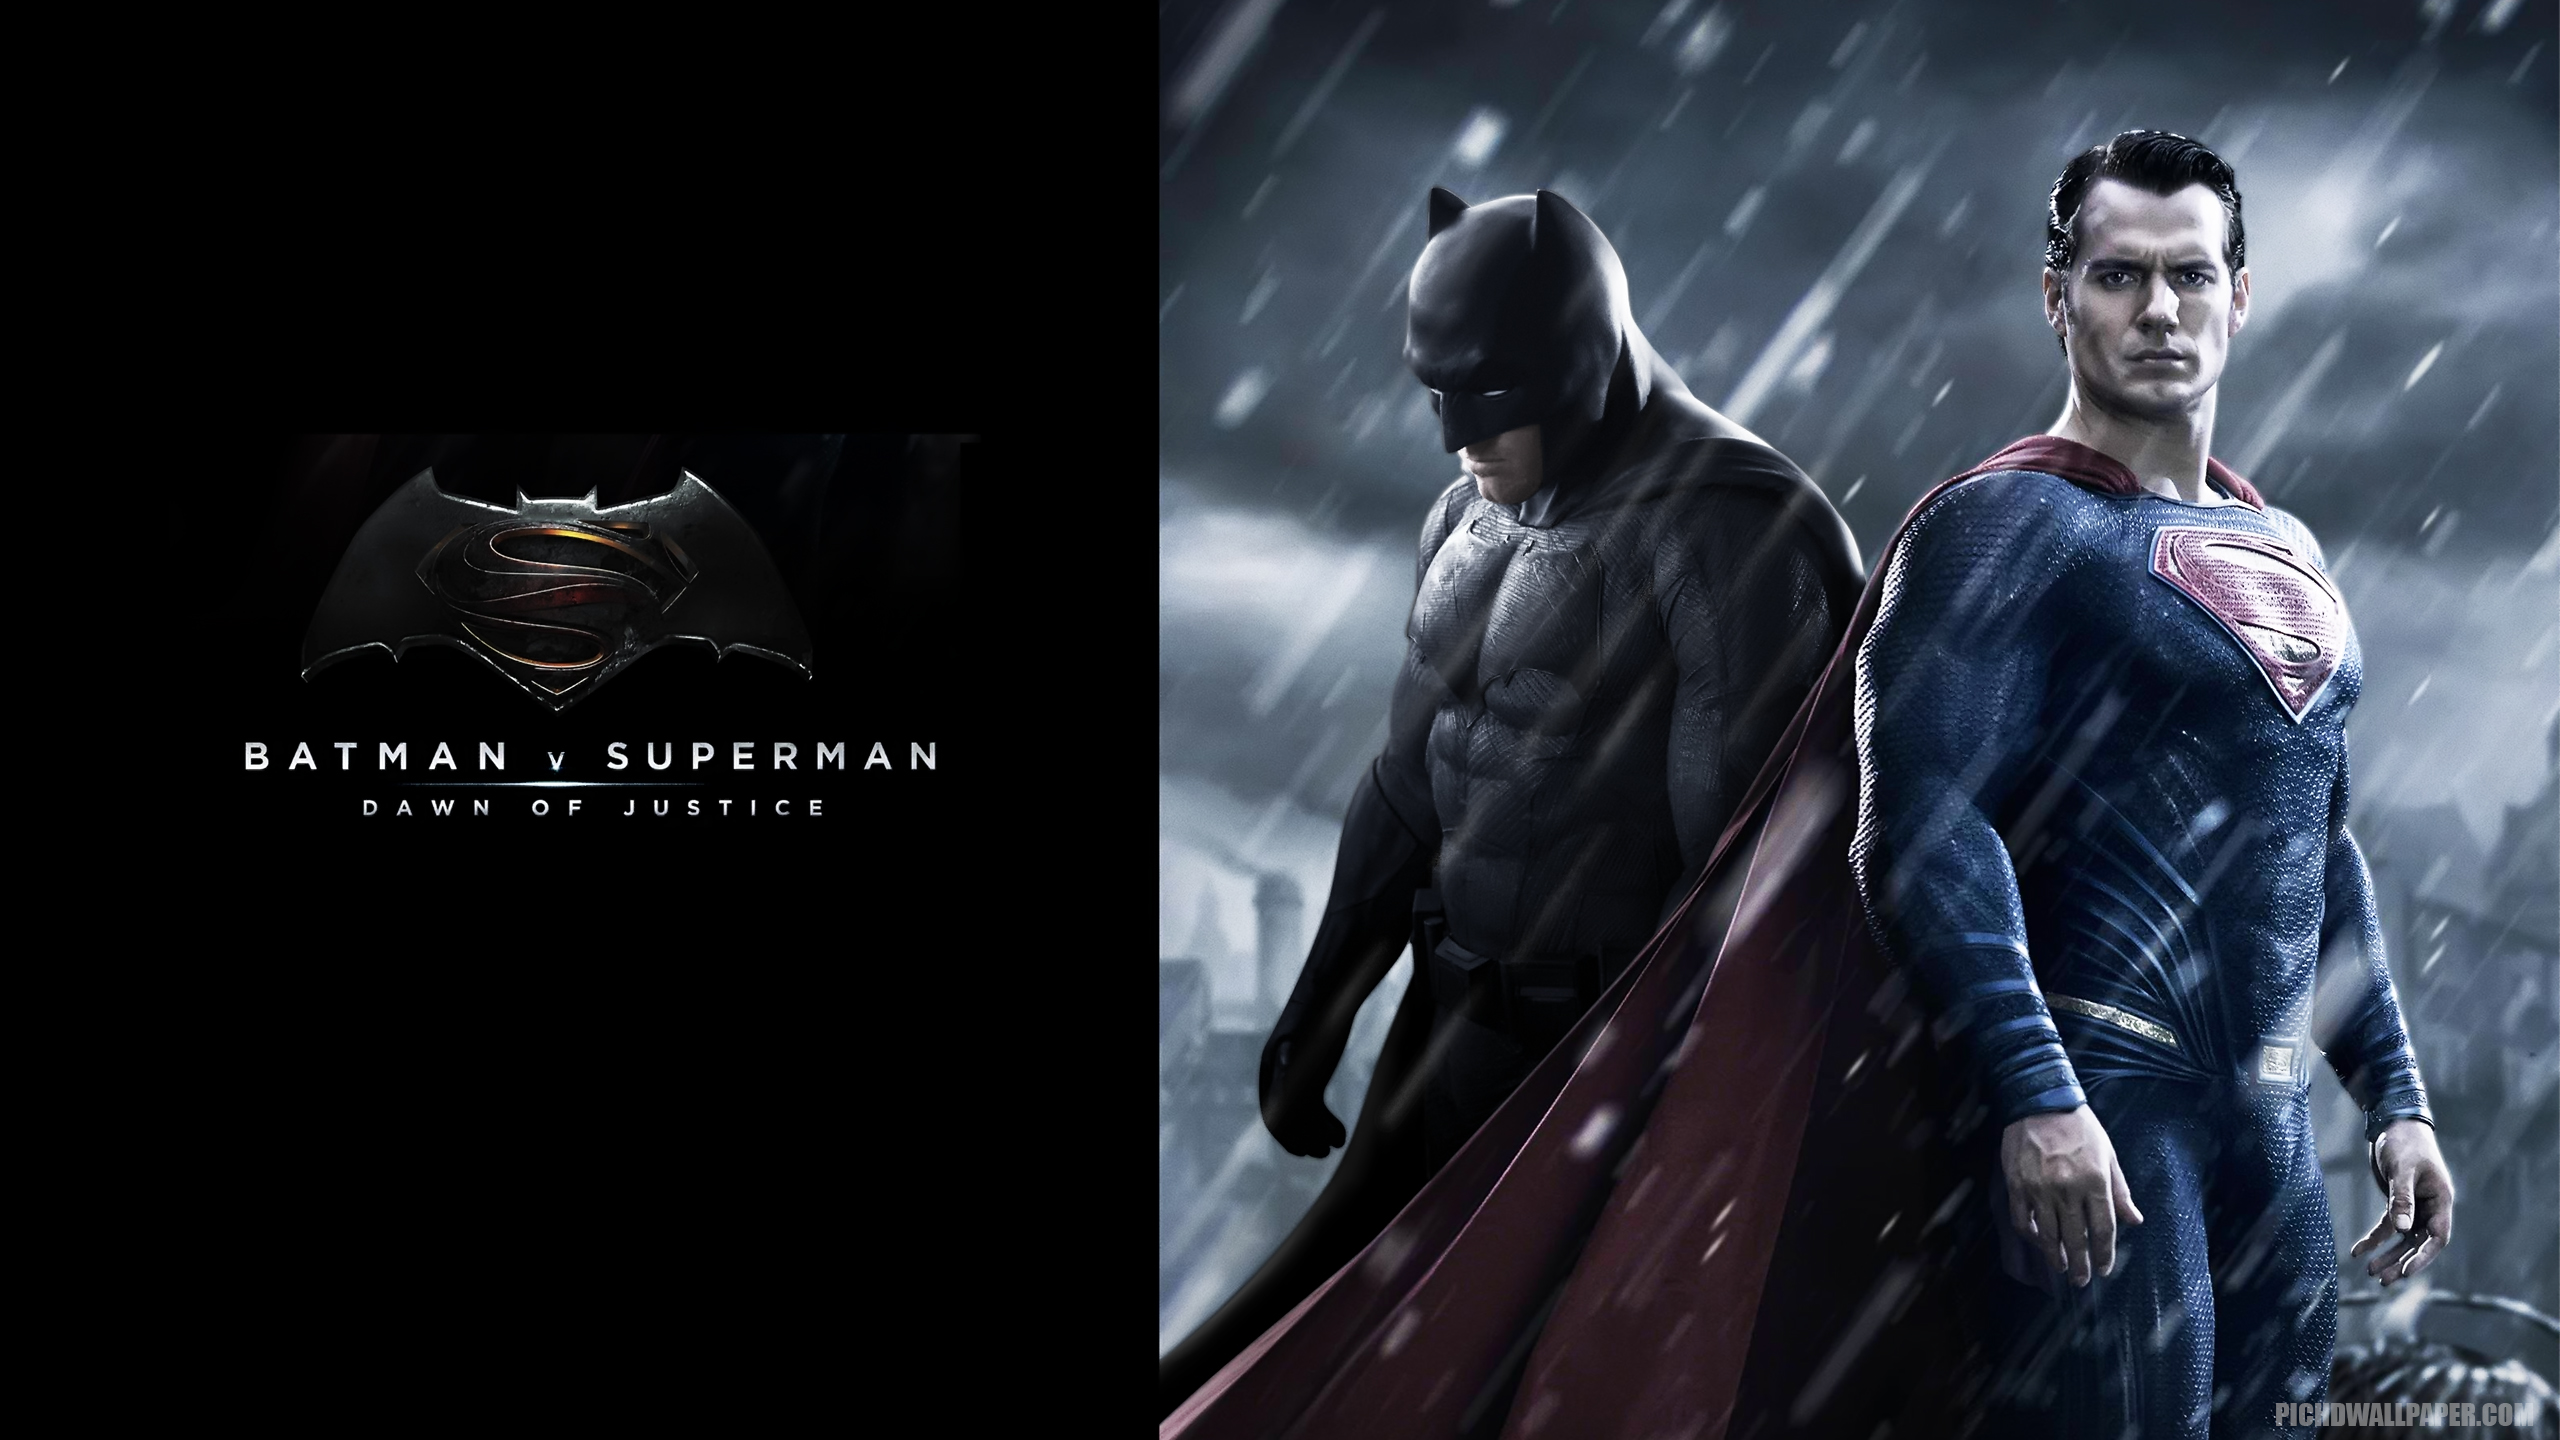 Batman V Superman Wallpaper post under Batman V Superman HD 2560x1440